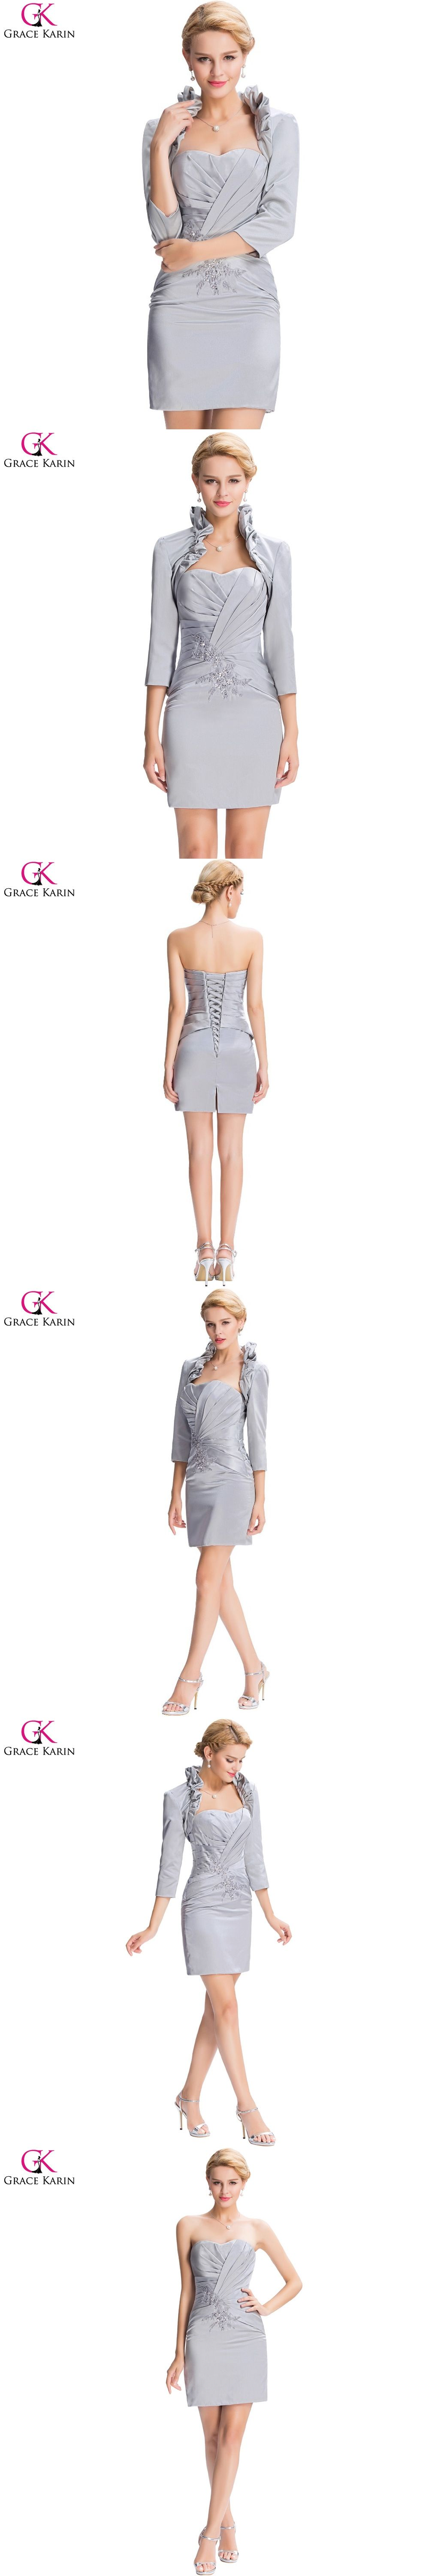 Grace Karin Grey Short Evening Dresses 2017 New Satin Sleeve Mother of the Bride  Dress With d084e9df4069